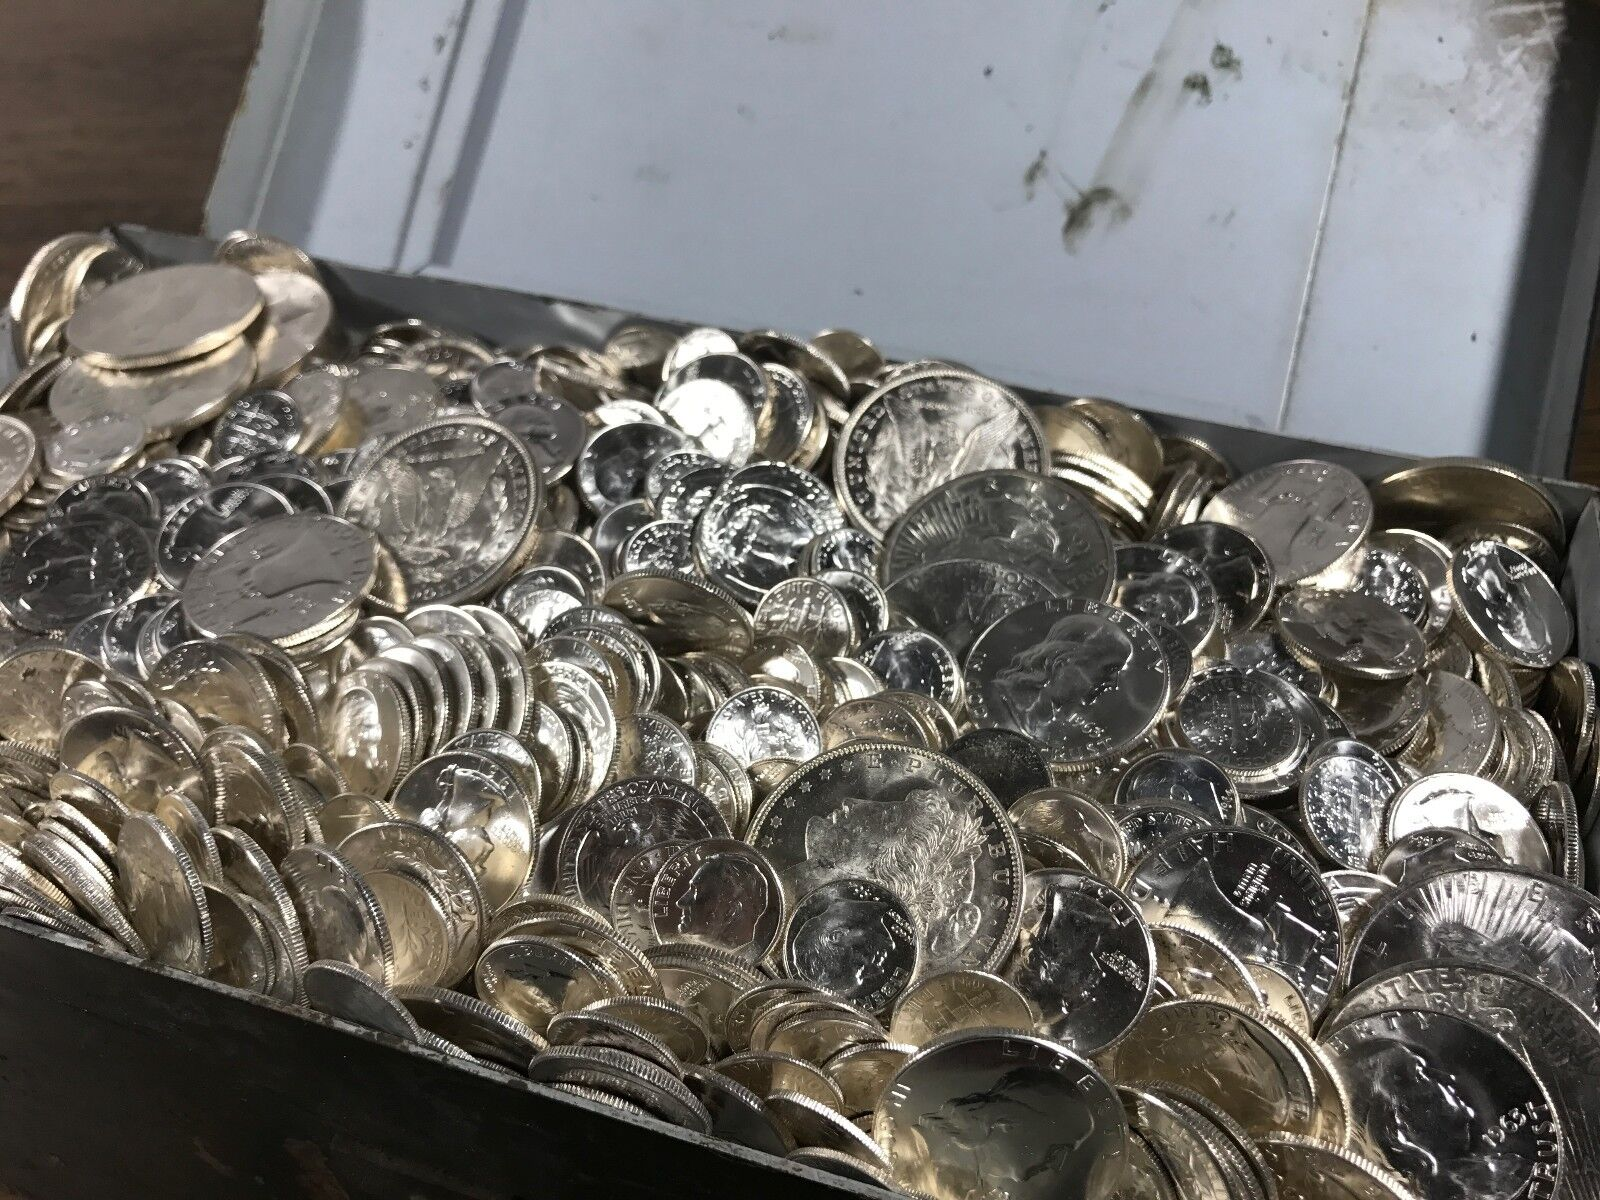 OLD UNCIRCULATED SILVER COIN MIXED MONEY ESTATE SALE LIQUIDATION SETS LOT COIN!